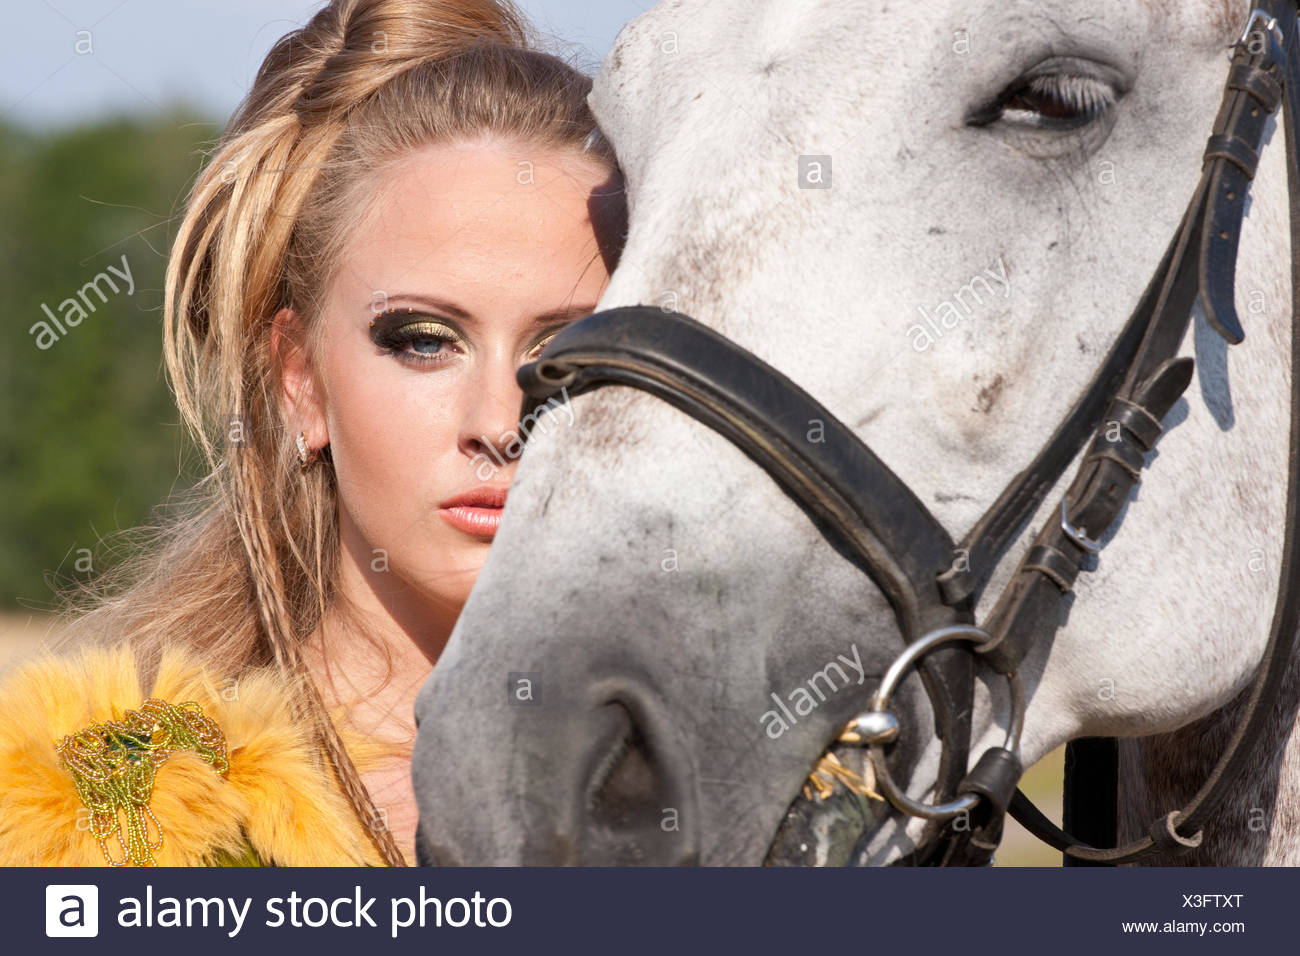 Horse and woman face to face - Stock Image